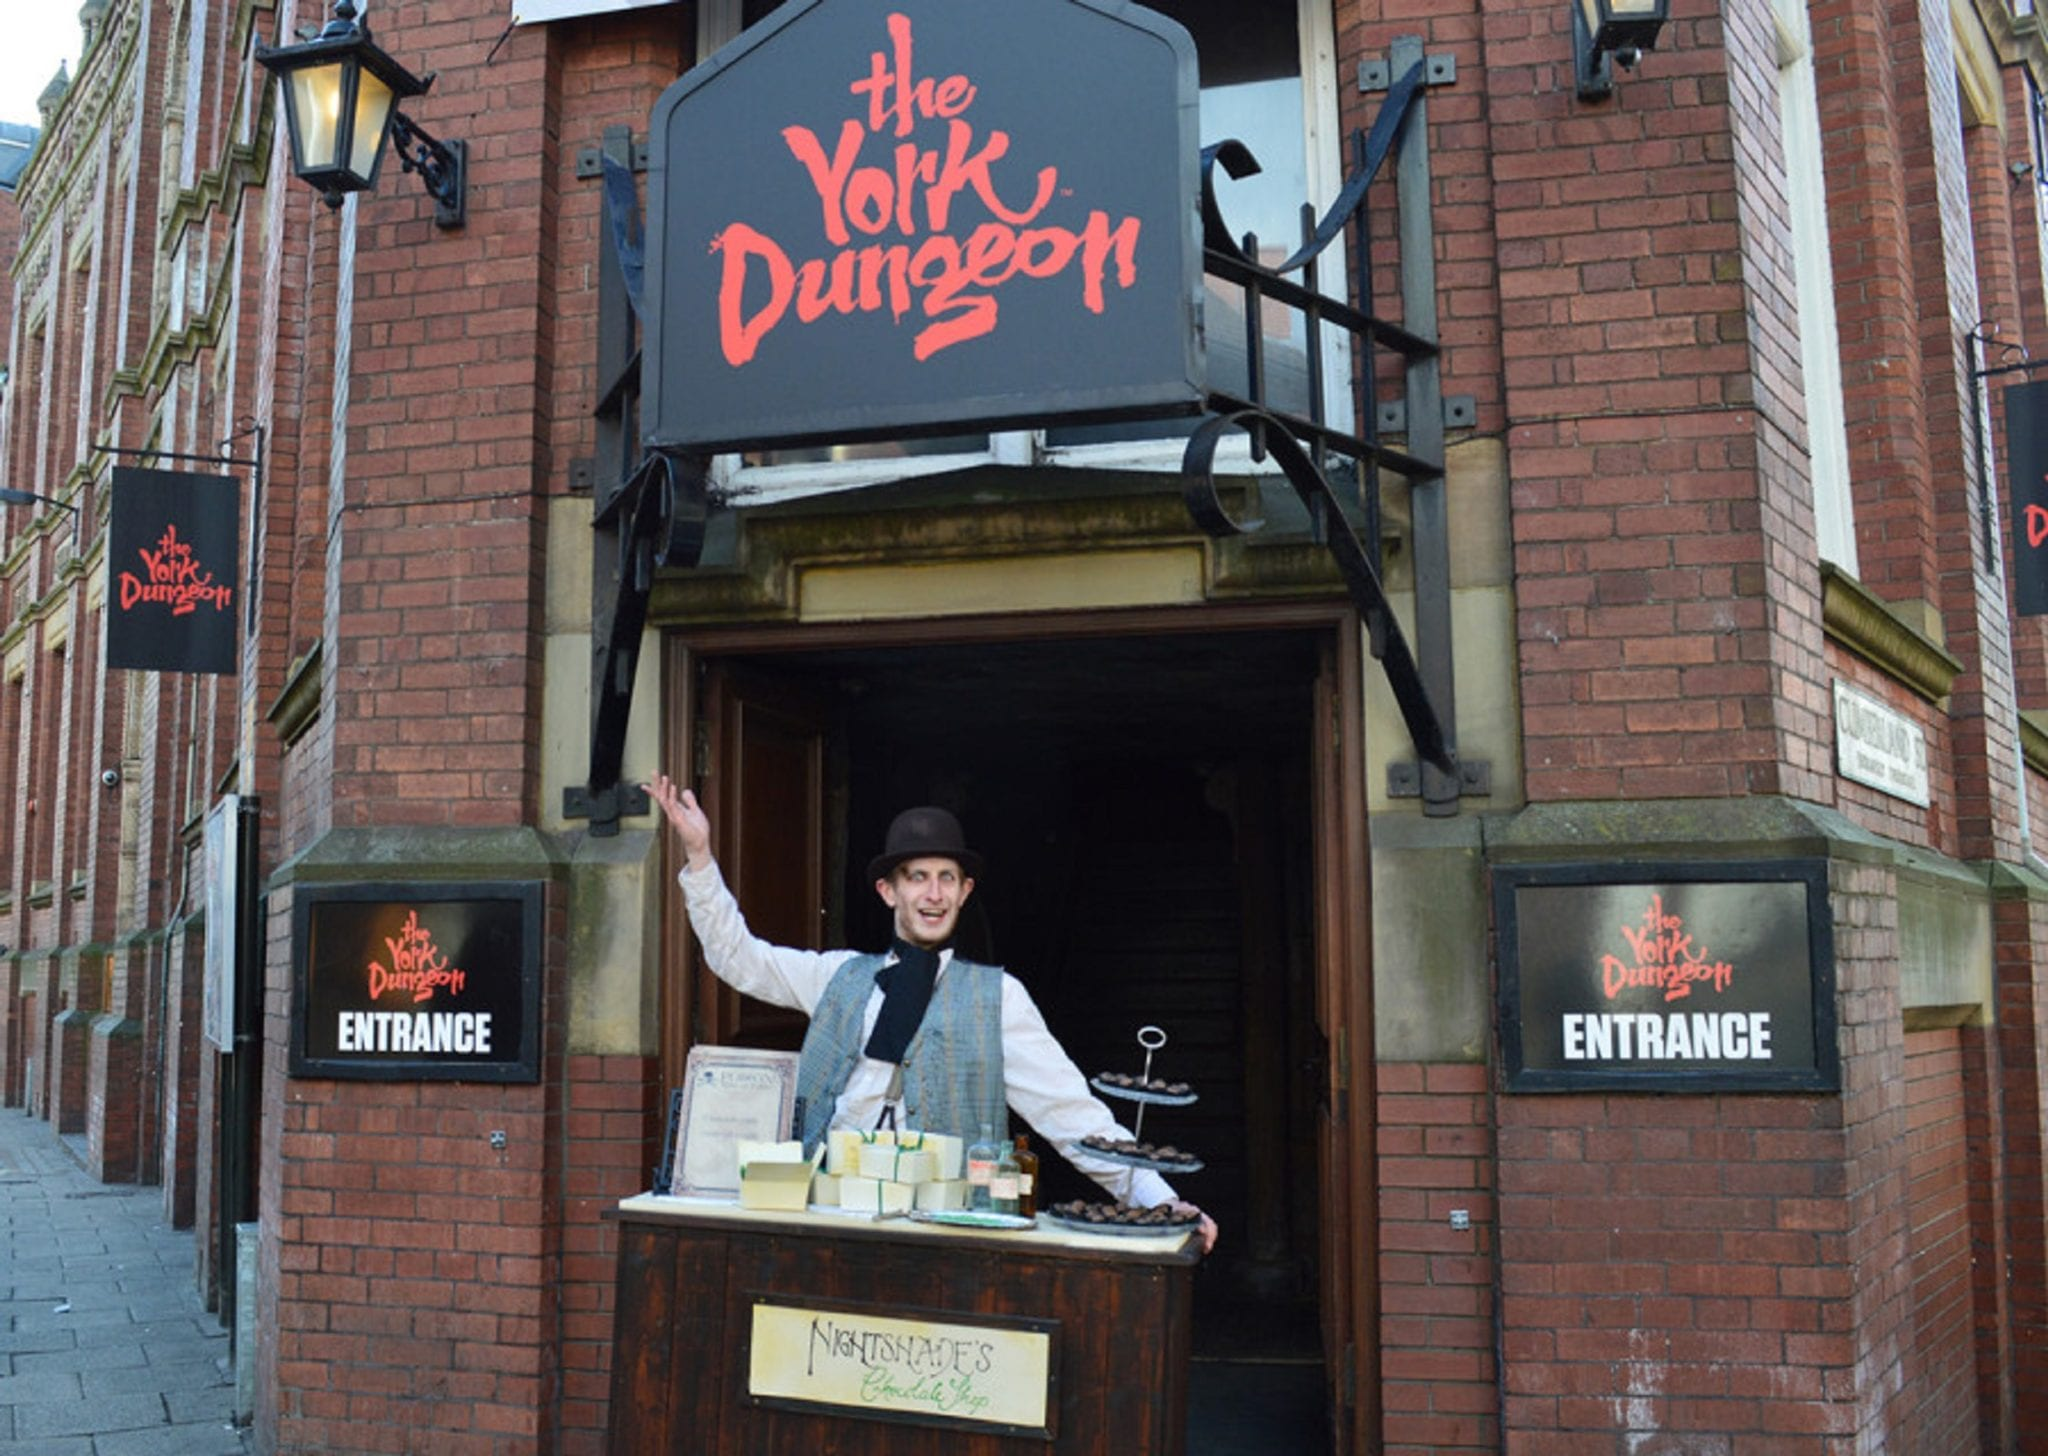 Visitors to York Dungeon are in safe hands